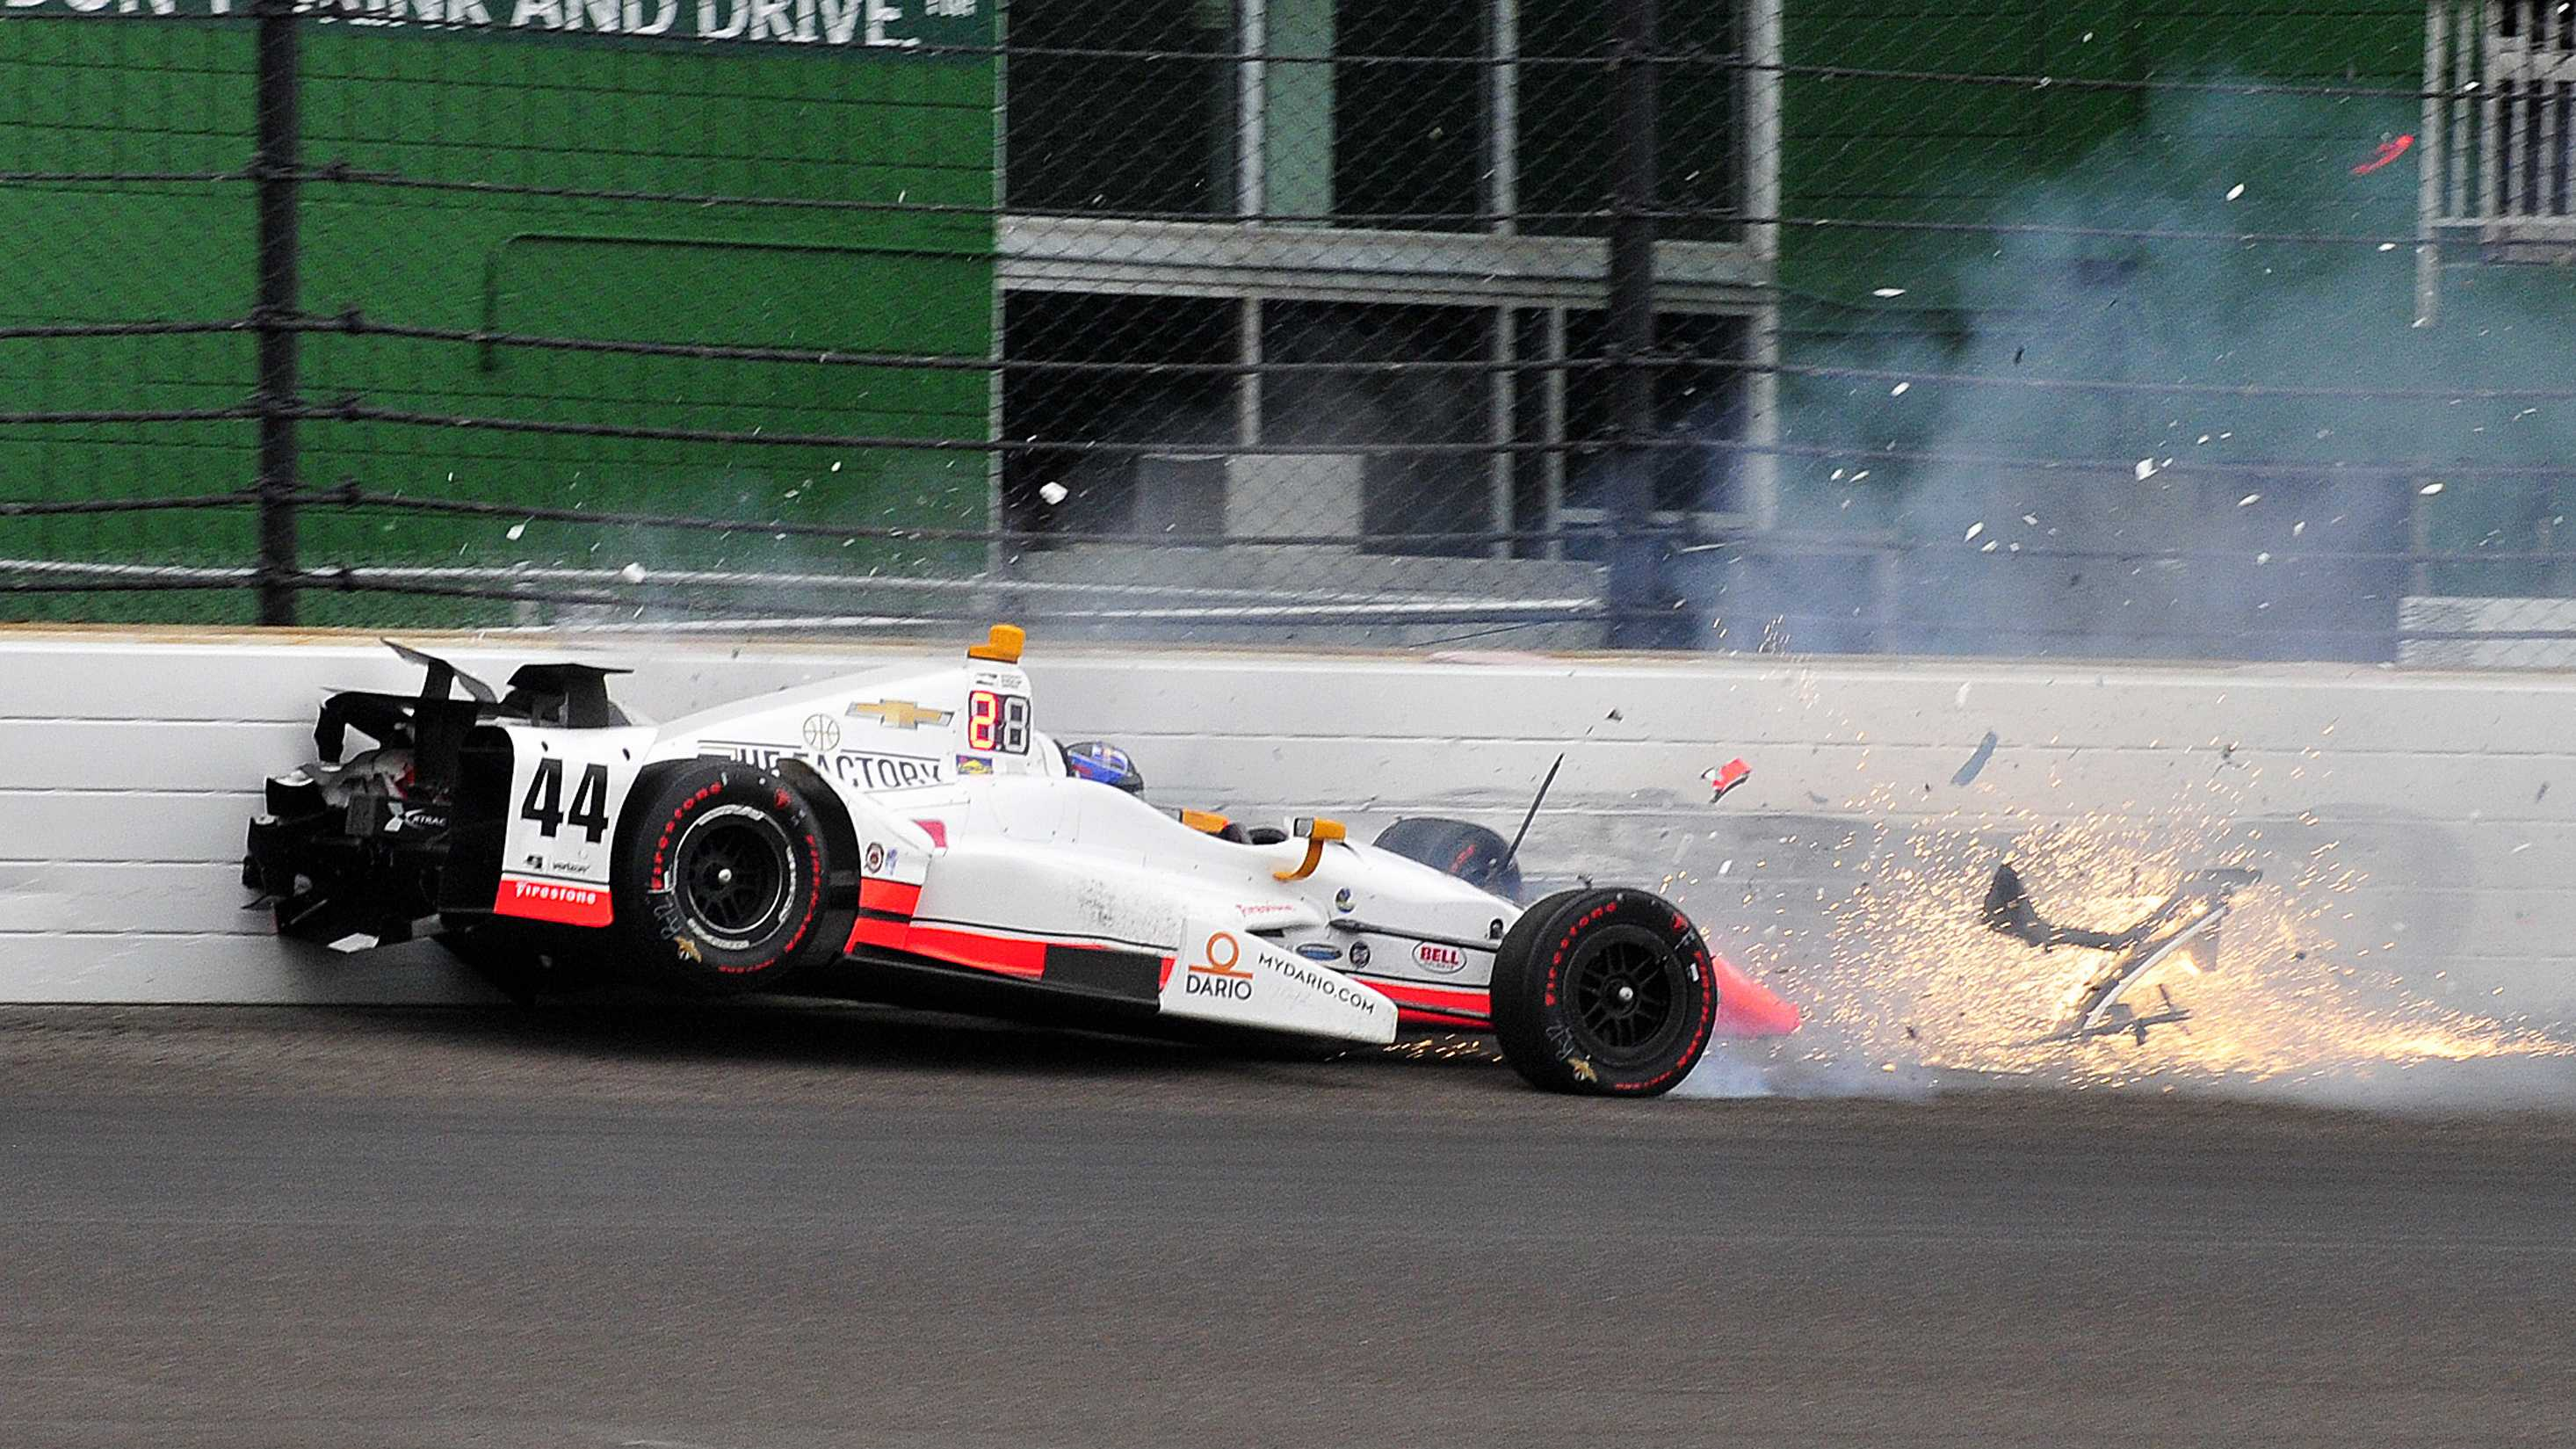 The car driven by Buddy Lazier hits the wall in the second turn during the running of the Indianapolis 500 auto race at Indianapolis Motor Speedway, Sunday, May 28, 2017, in Indianapolis. (AP Photo/John Maxwell)